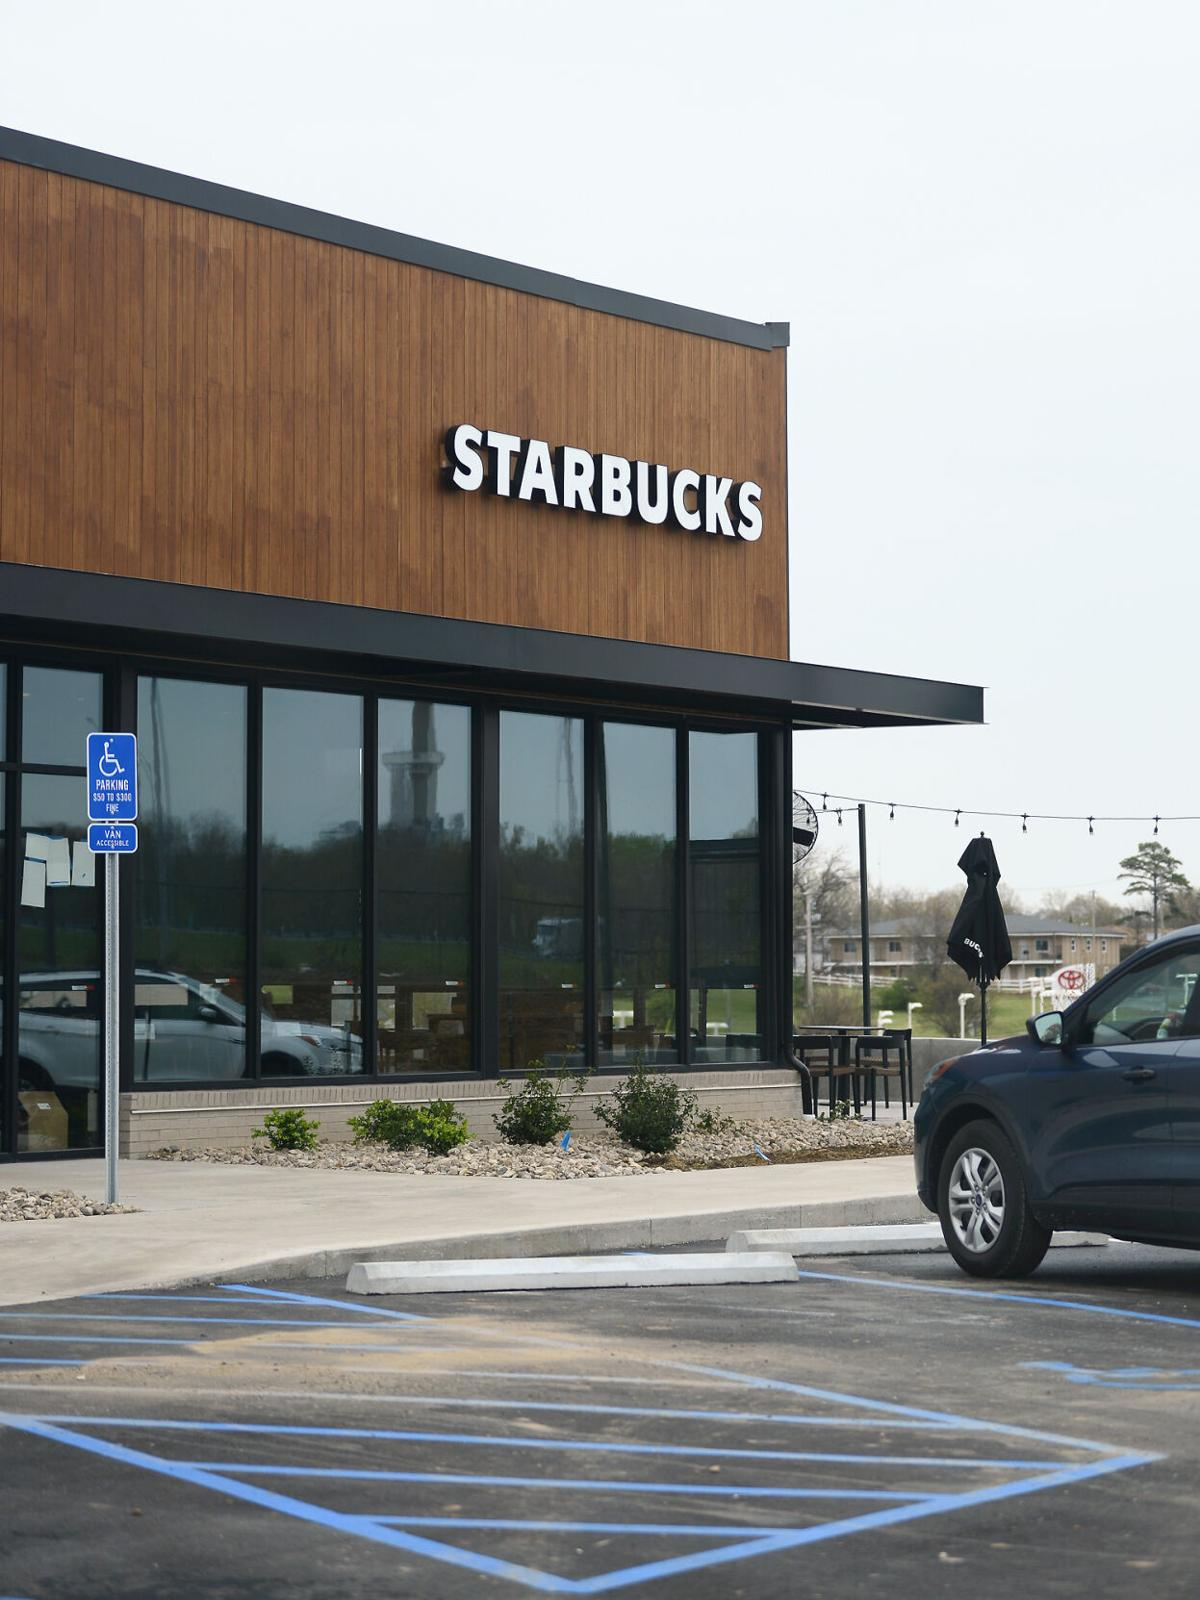 A new Starbucks location will open near Rangeline St. and Vandiver Dr.